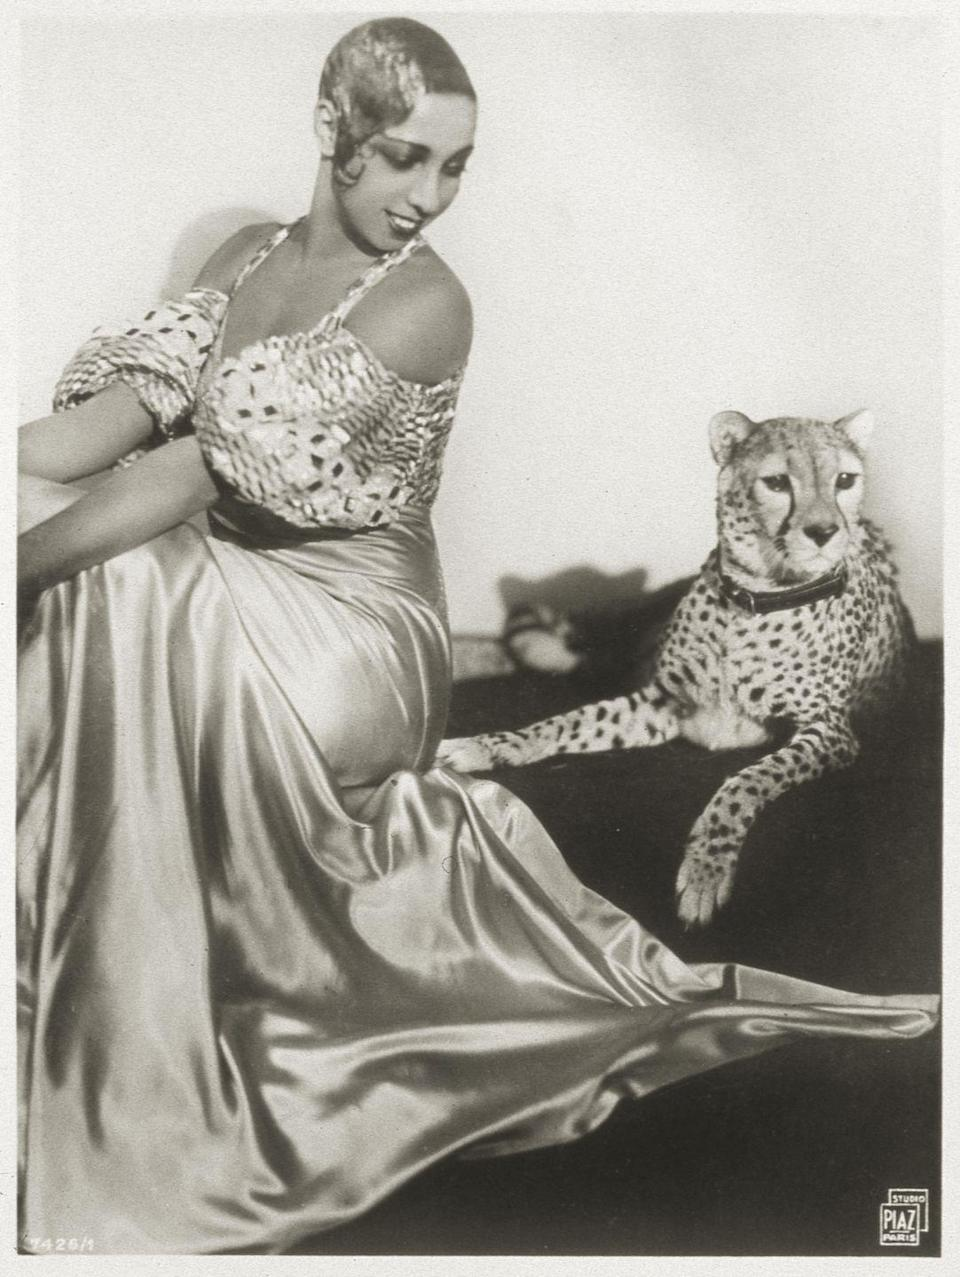 <p>While working as a cabaret star in Paris, Baker was gifted her pet cheetah, Chiquita. The animal wore a diamond collar and was known to accompany her on stage. </p>